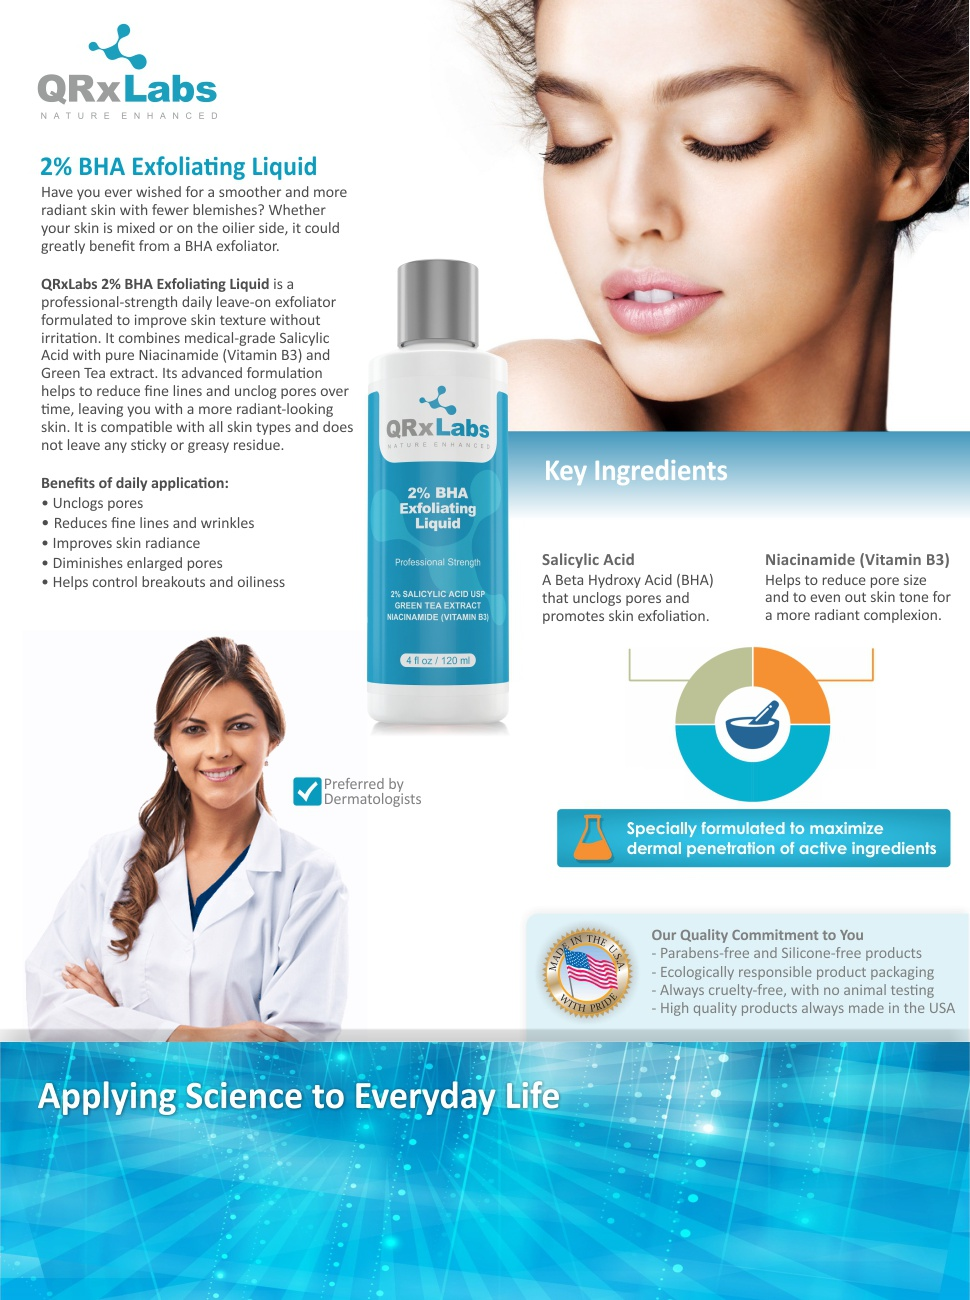 2% BHA Exfoliating Liquid Brochure